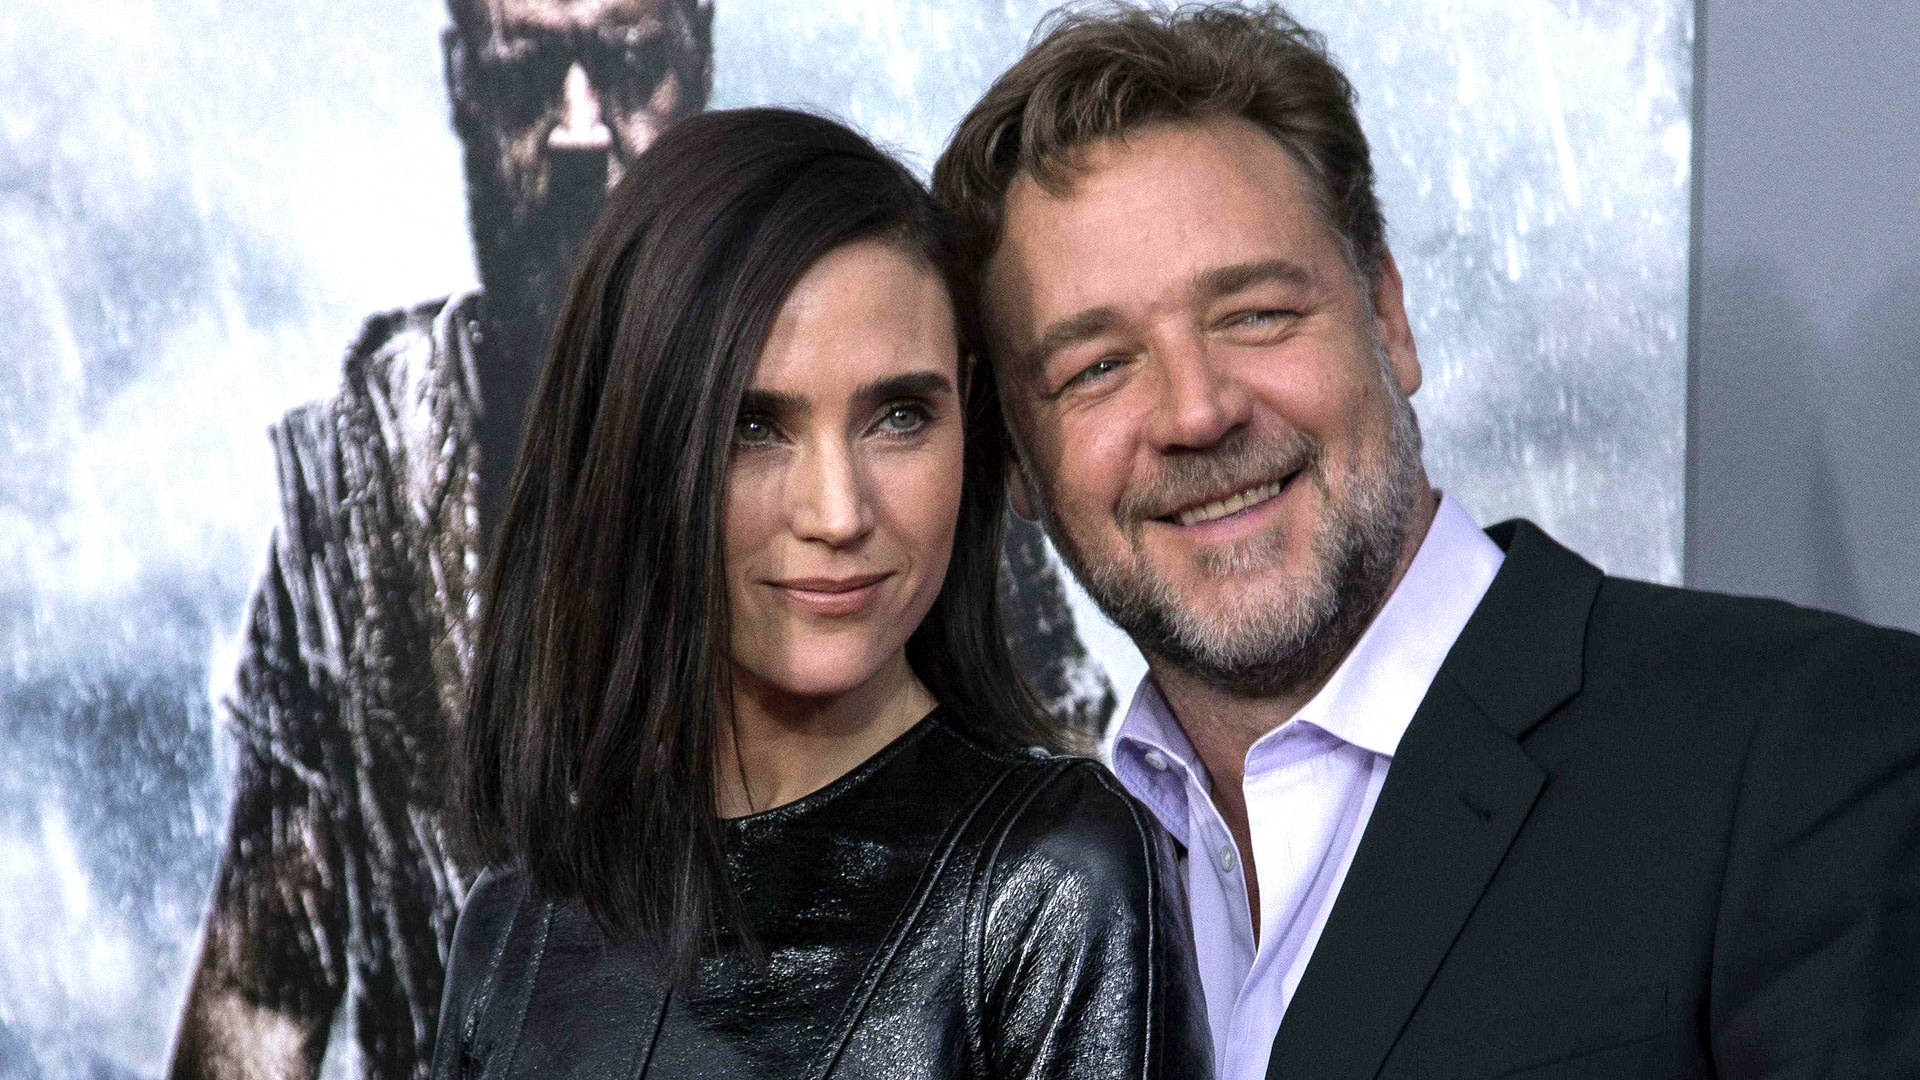 """Image: Cast members Connelly and Crowe attend the U.S. premiere of """"Noah"""" in New York"""